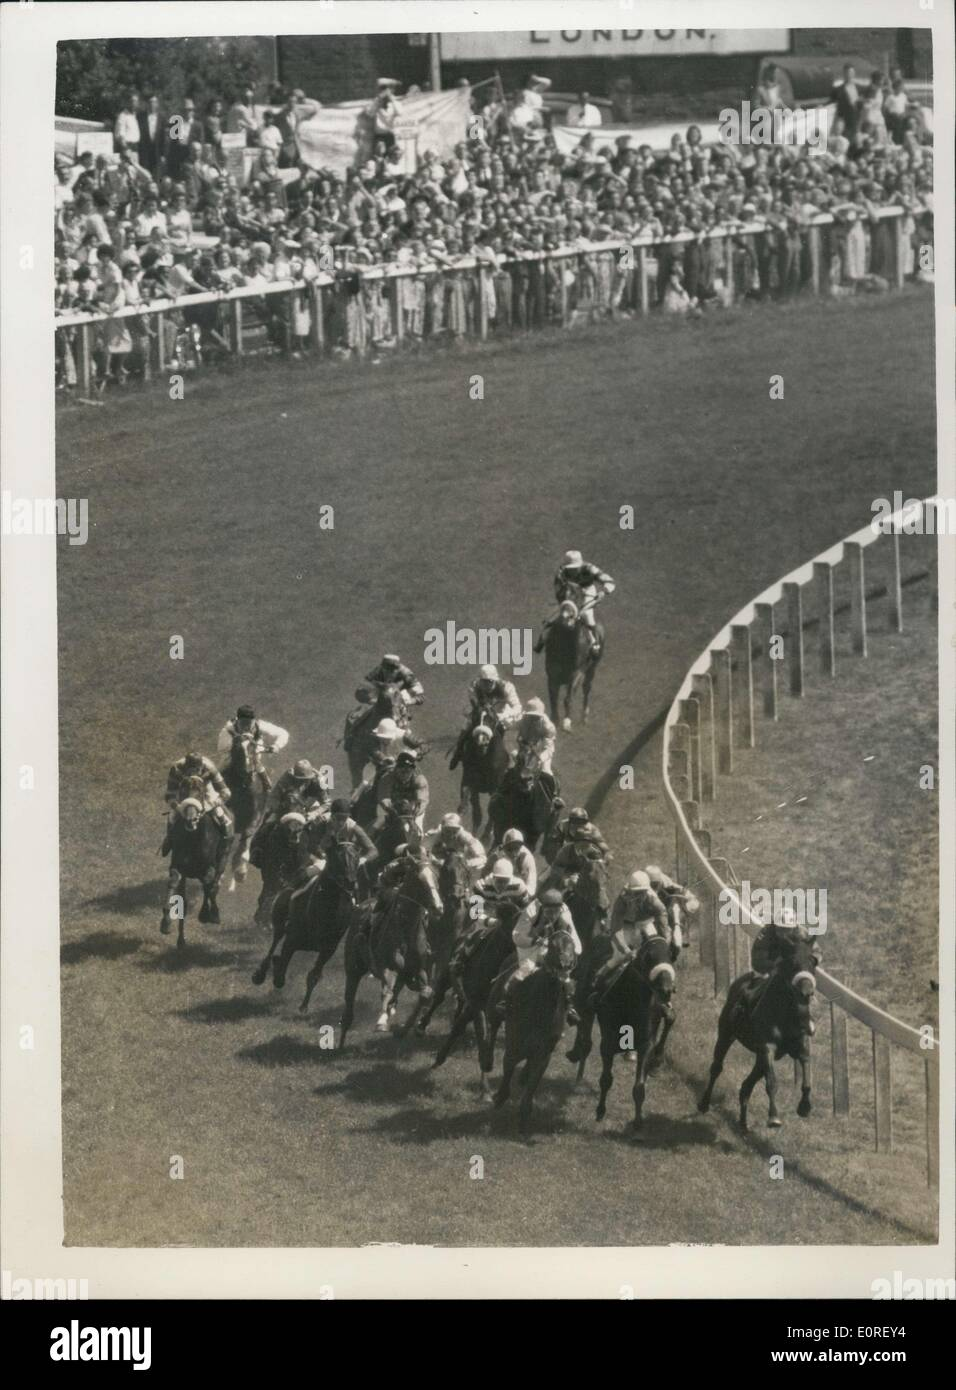 Jun. 05, 1959 - ''Parthia'' Wins The 1959 Derby Field At Tattenham Corner: The Derby was won at Epsom this afternoon by Sir Humphrey de Traffors's ''Parthia'' (Harry Carr) with ''Fidalgo'' (J. Mercer) second and ''Shantung'' (Palmer) (third). Photo shows: General view as the field rounds Tattenham corner - during the Derby this afternoon. - Stock Image